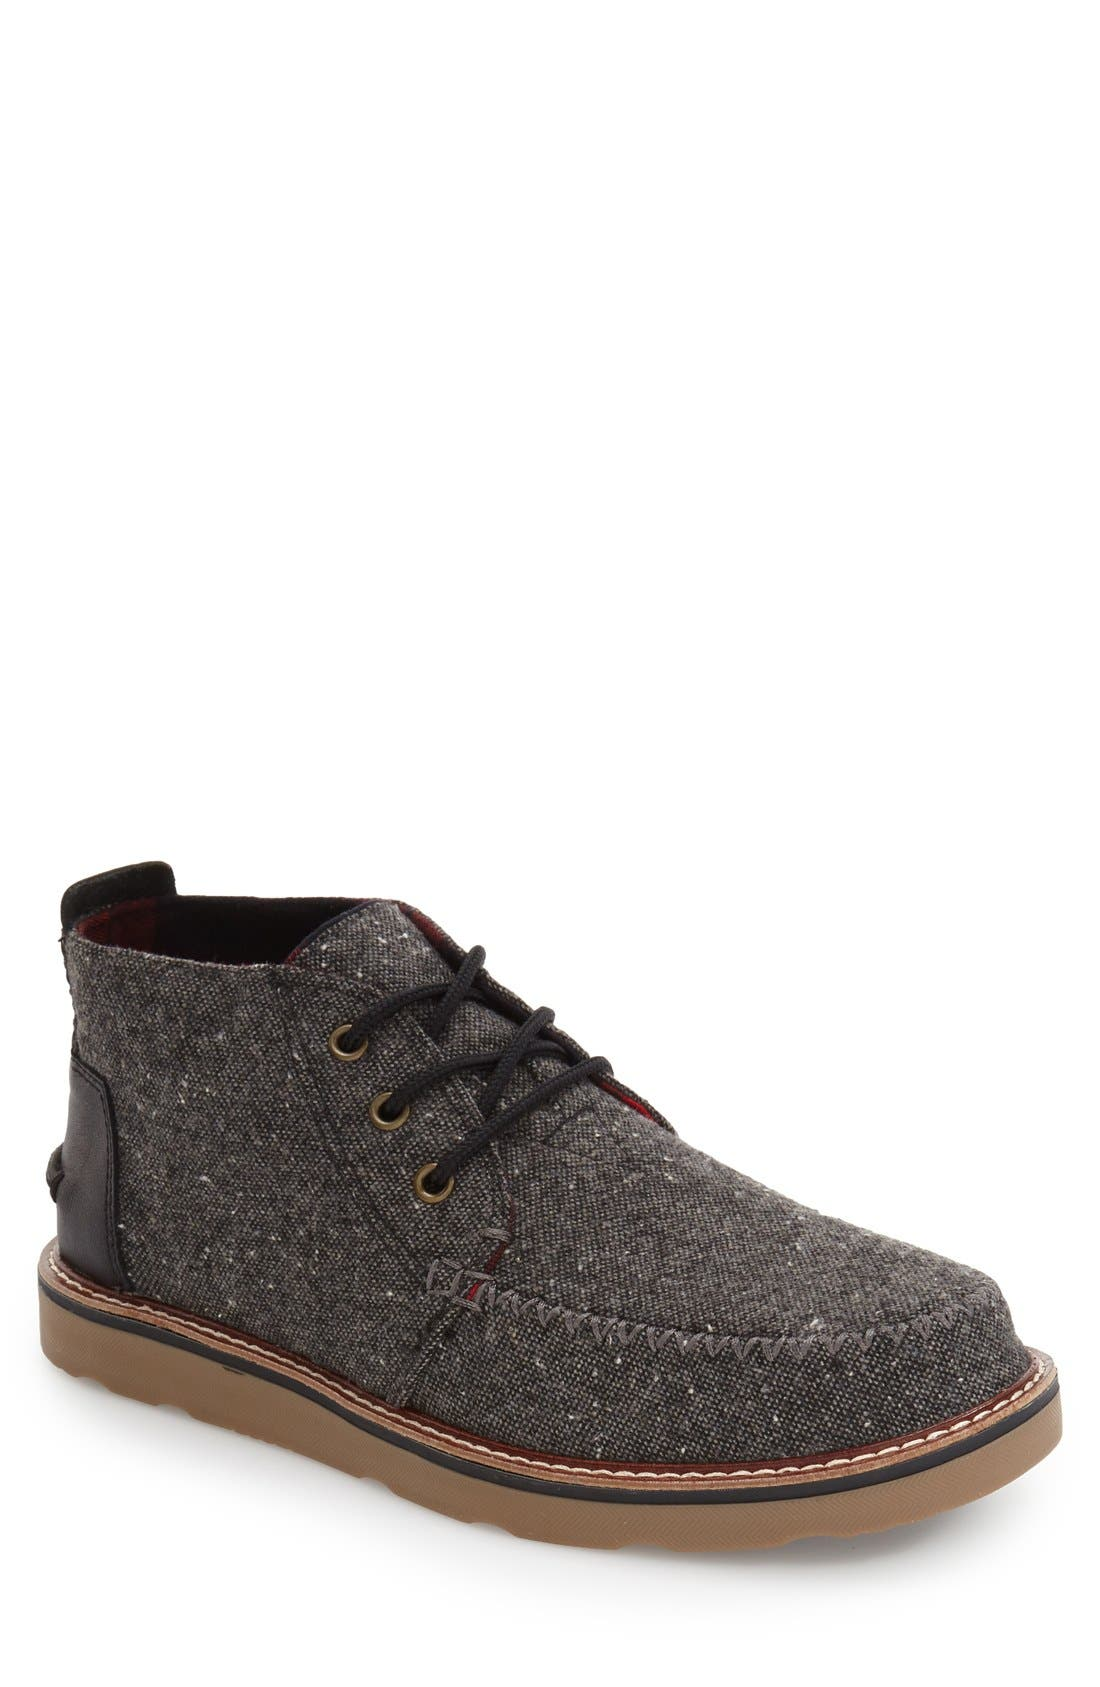 Alternate Image 1 Selected - TOMS Chukka Boot (Men)